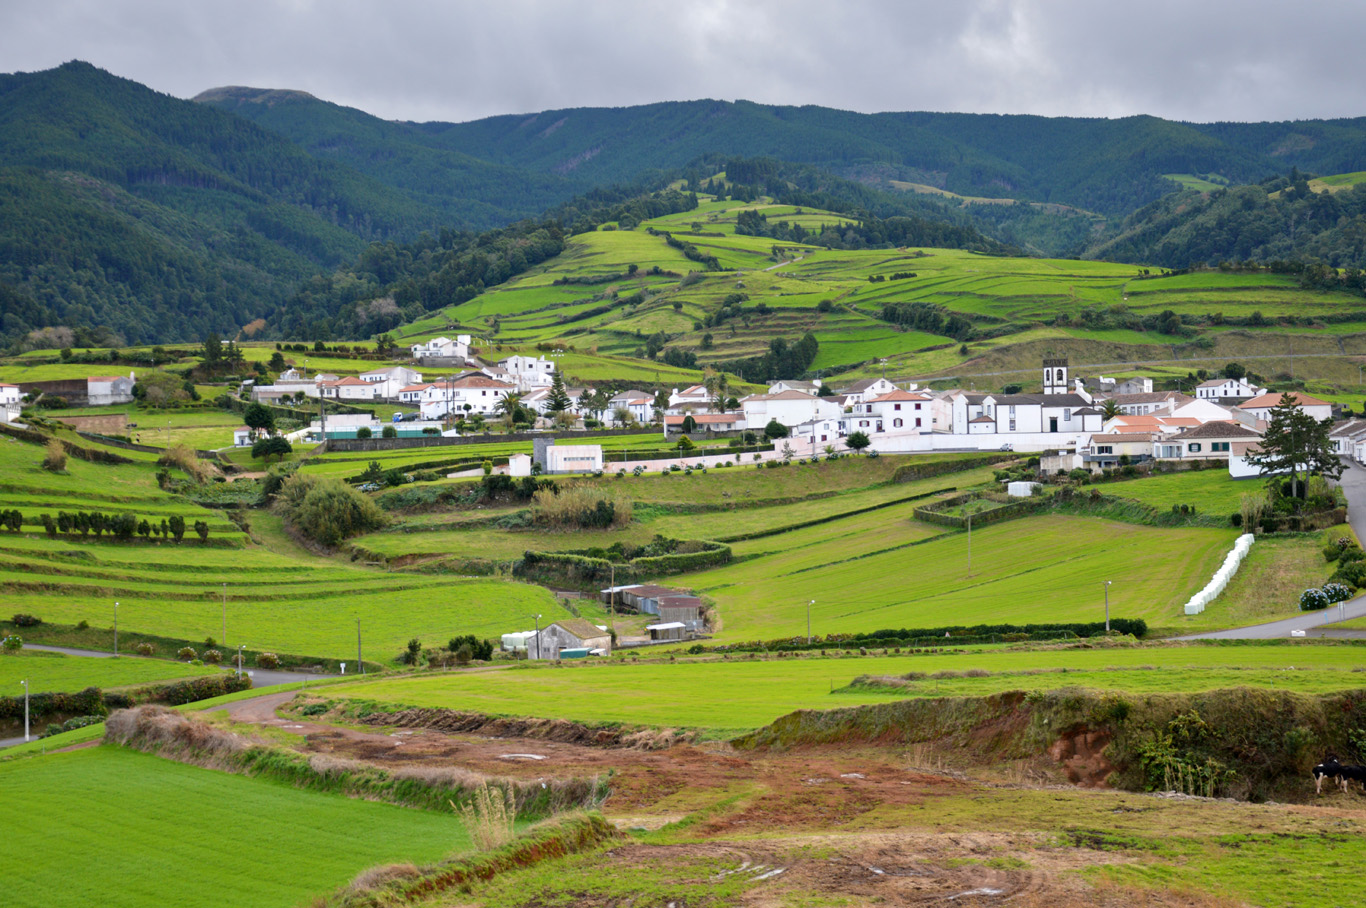 The countryside of Azores